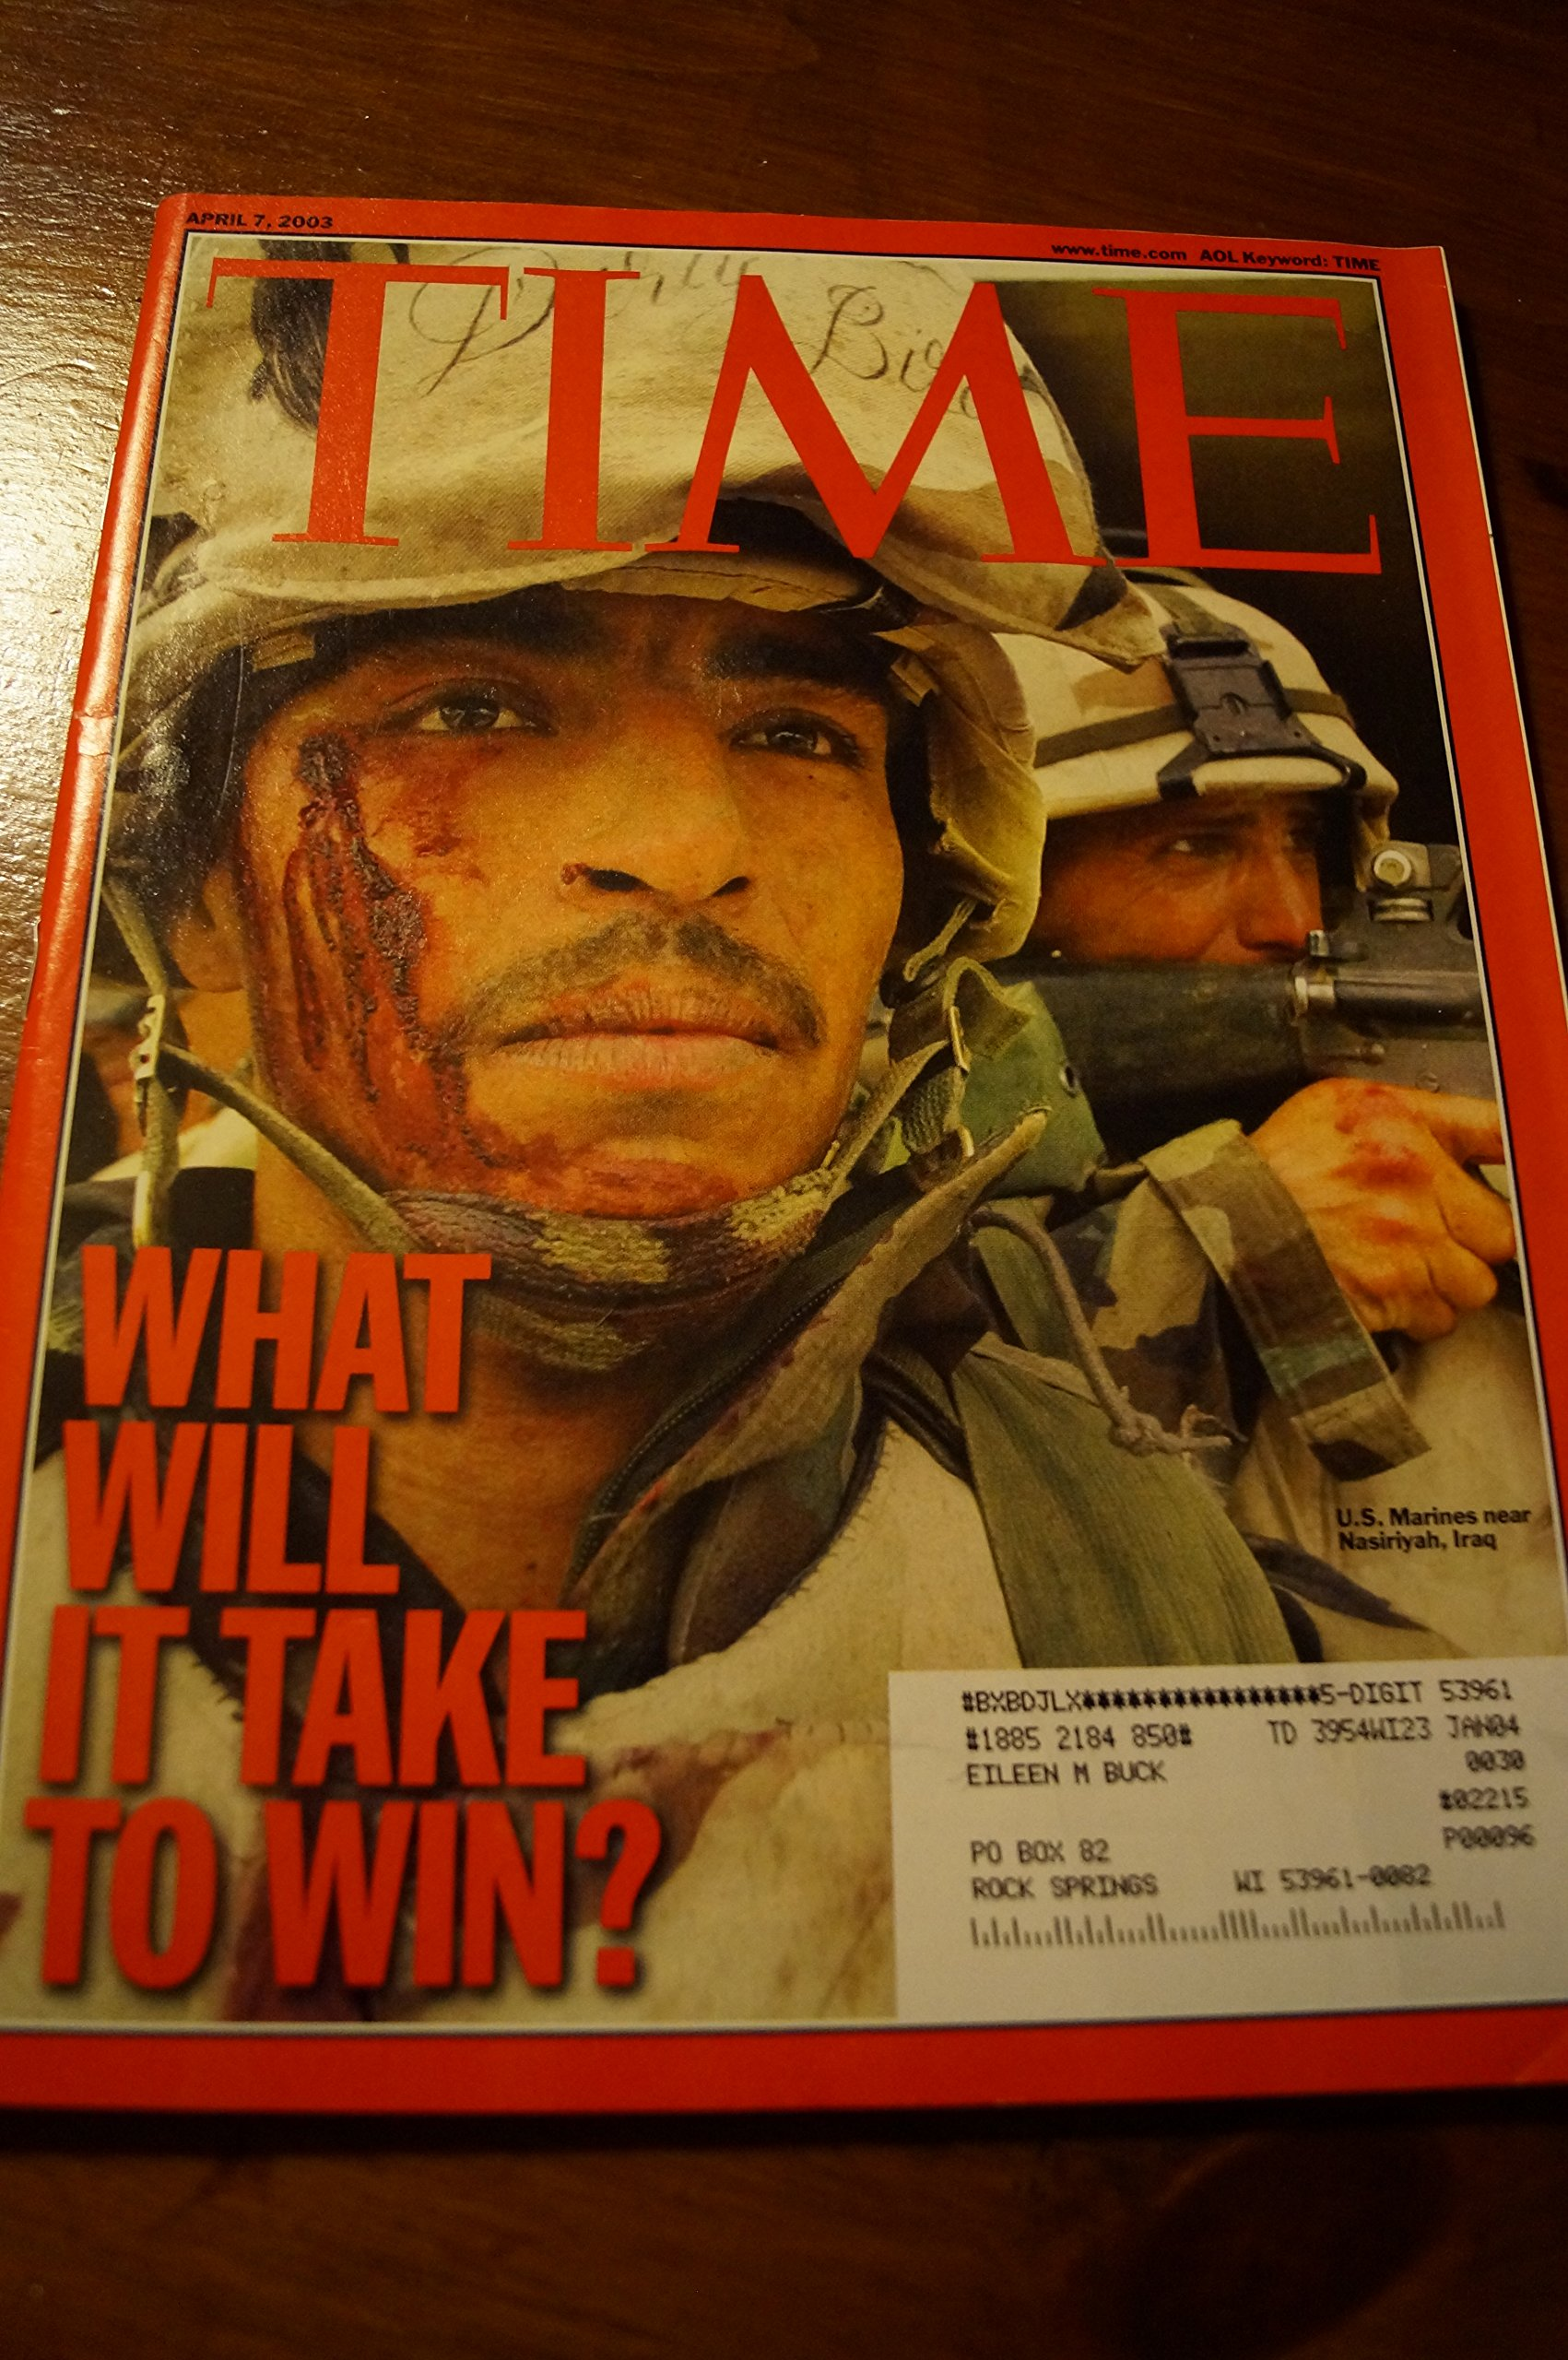 Read Online Time Magazine April 7 2003 What Will it Take to Win? ebook